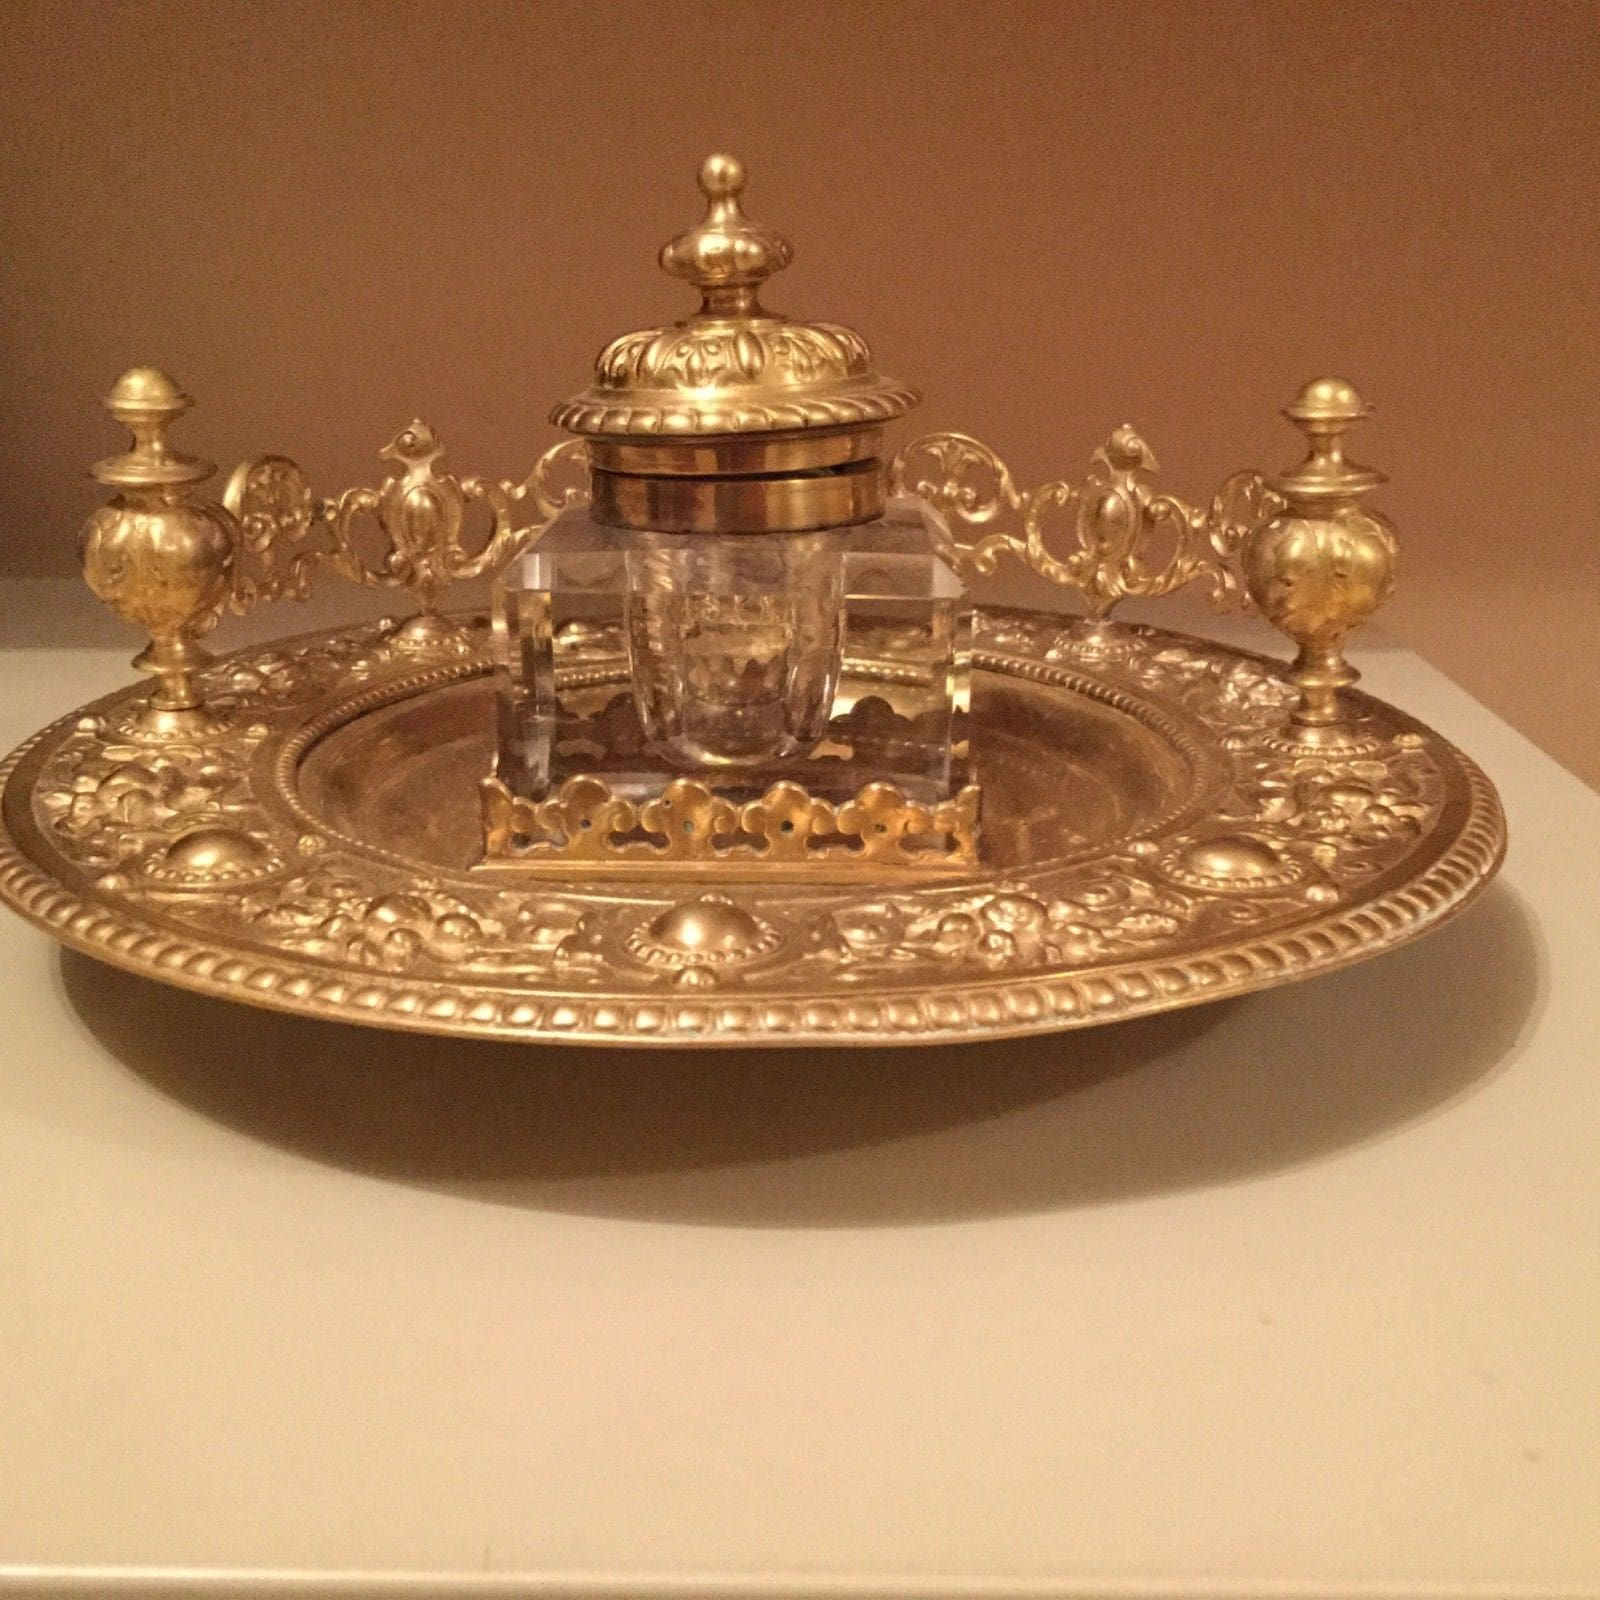 Antique French 19th century crystal inkwell with ornate and elegant bronze base